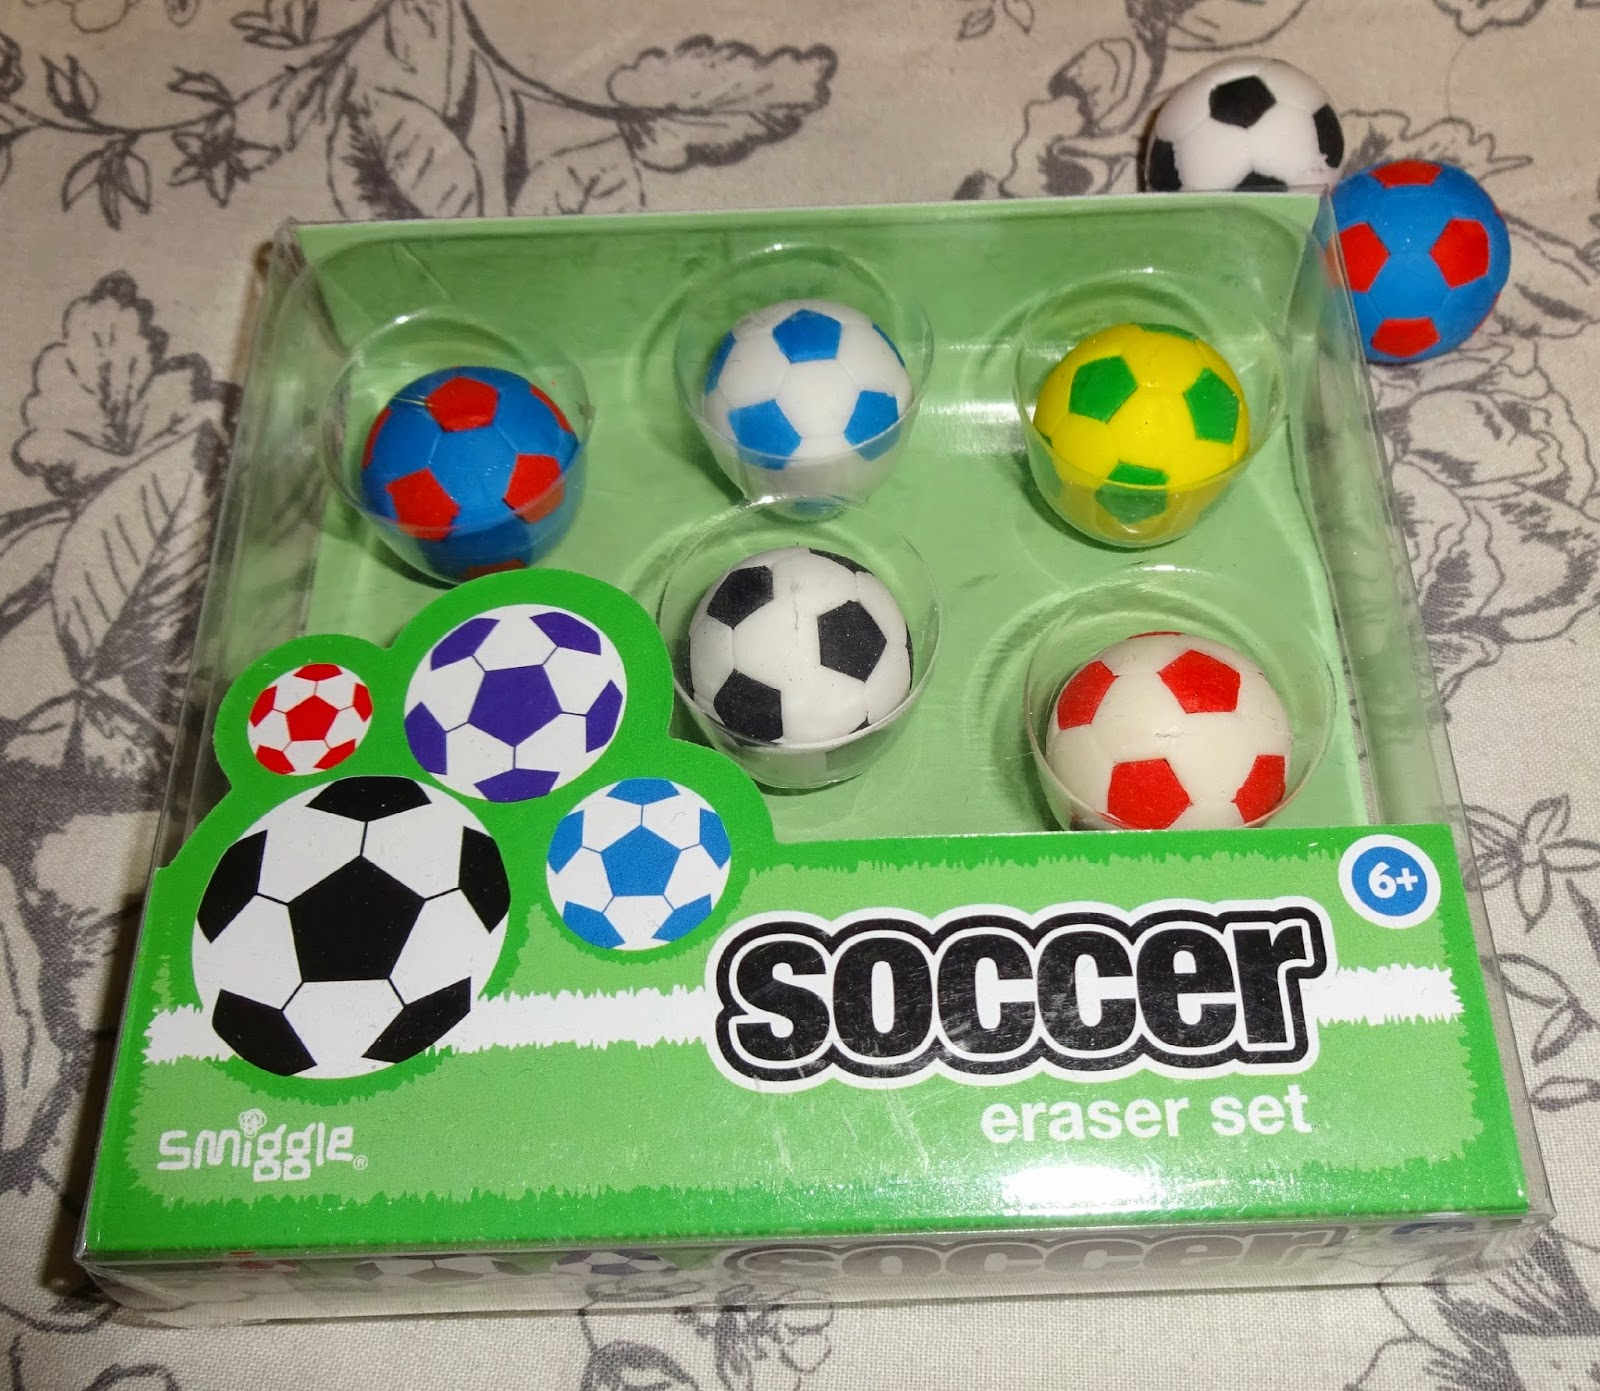 smiggle stationary uk, smiggle soccer eraser set